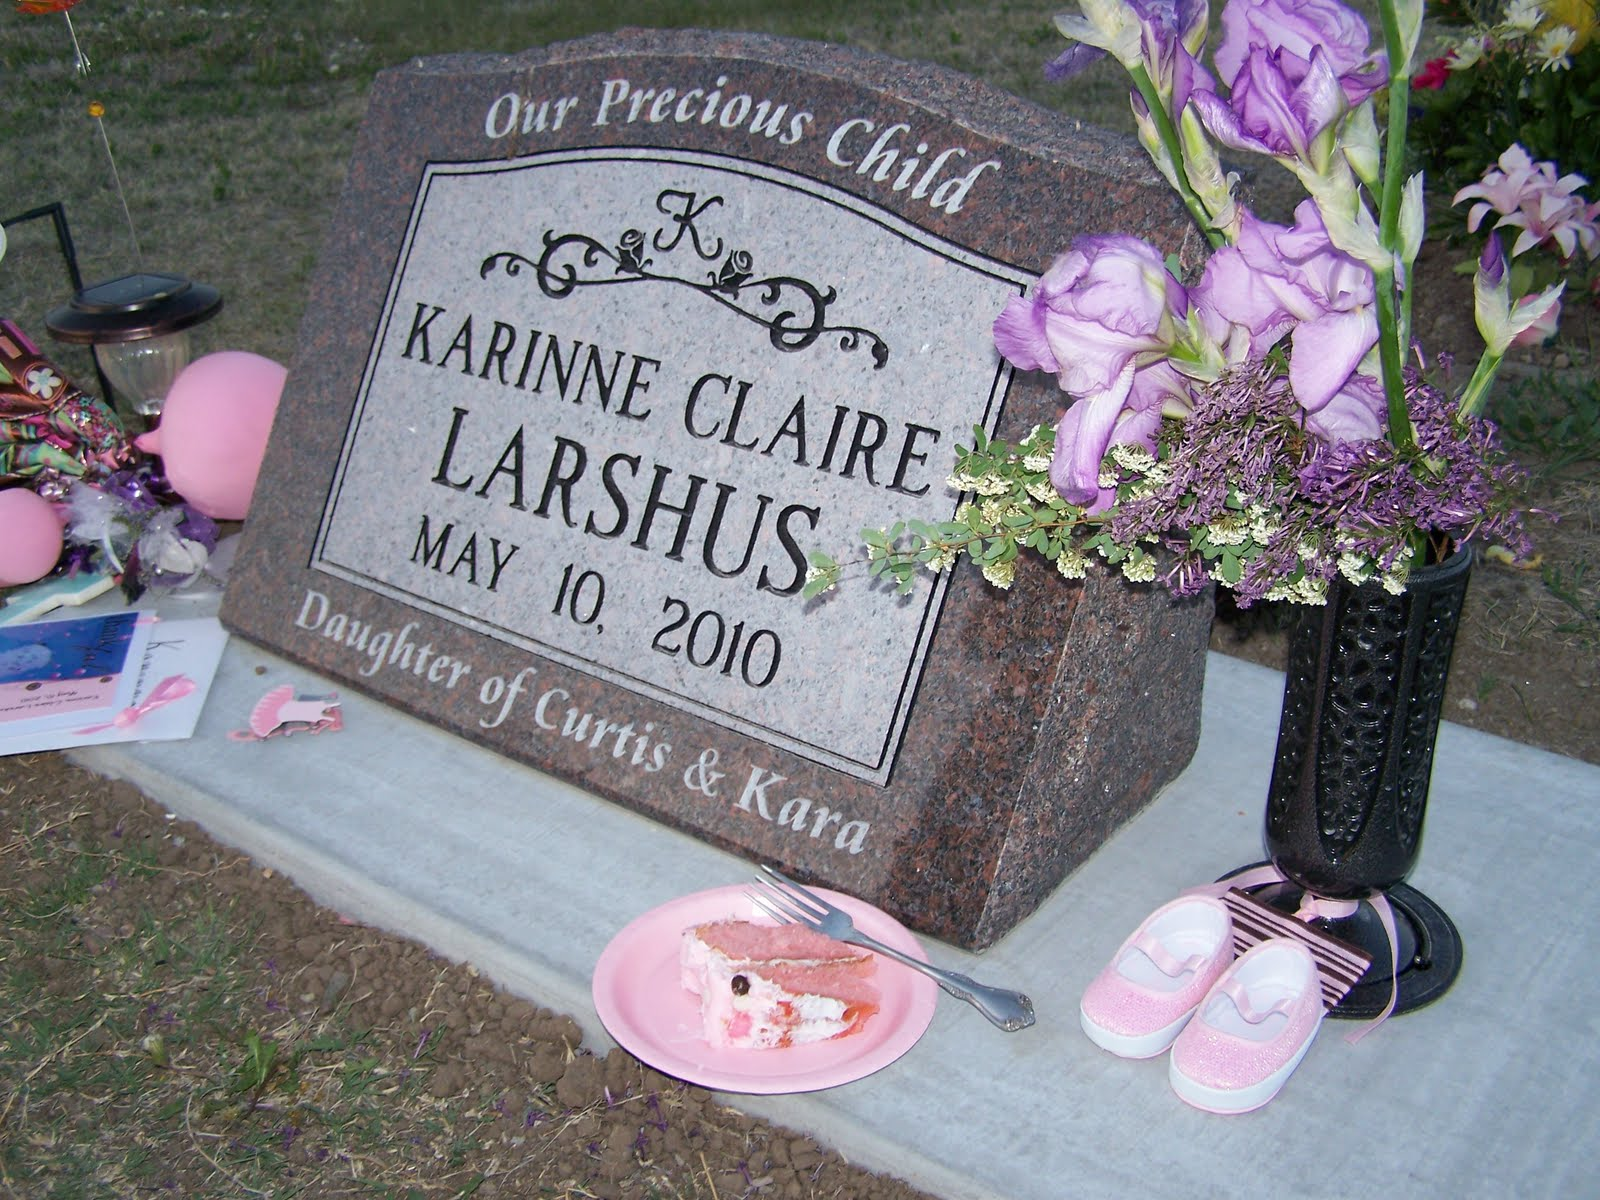 Karinne claire remembering karinne for her birthday part 2 danae and i had picked out a new pair of dancing shoes for karinnes grave my mom had placed a little white pair on her grave last may and they stayed izmirmasajfo